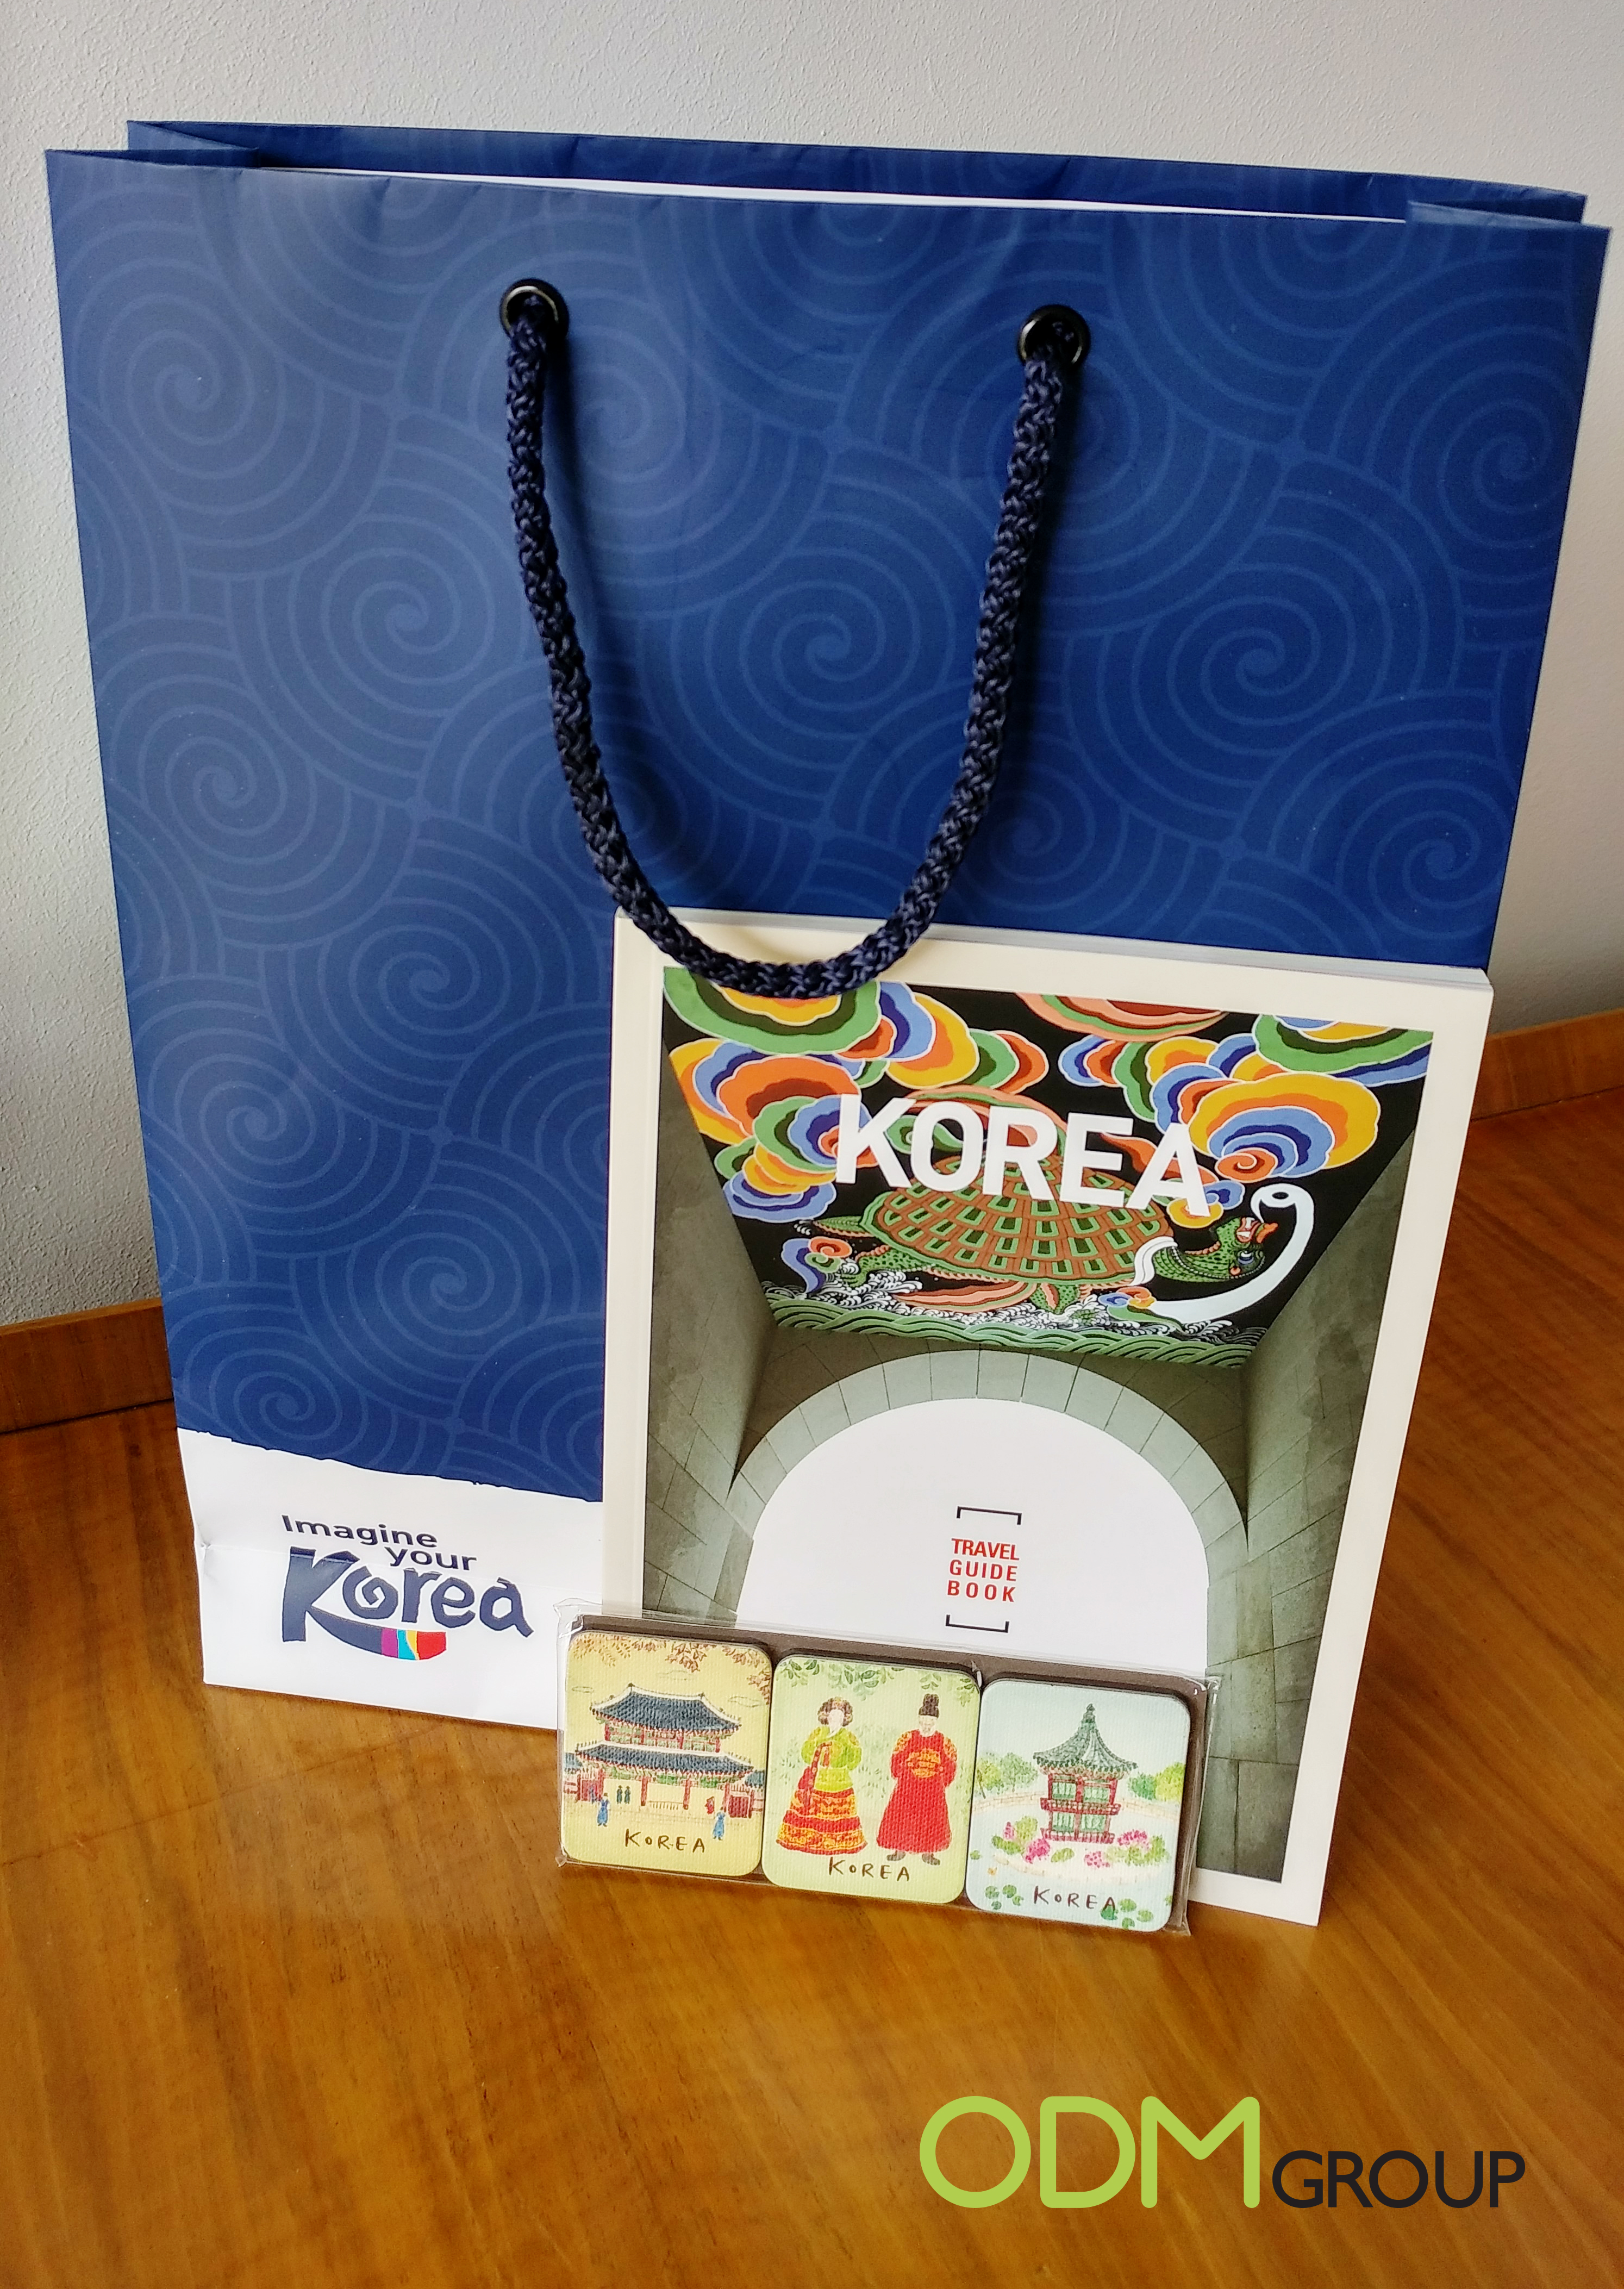 Visit Korea Offers Eye Catching Trade Show Giveaways in London